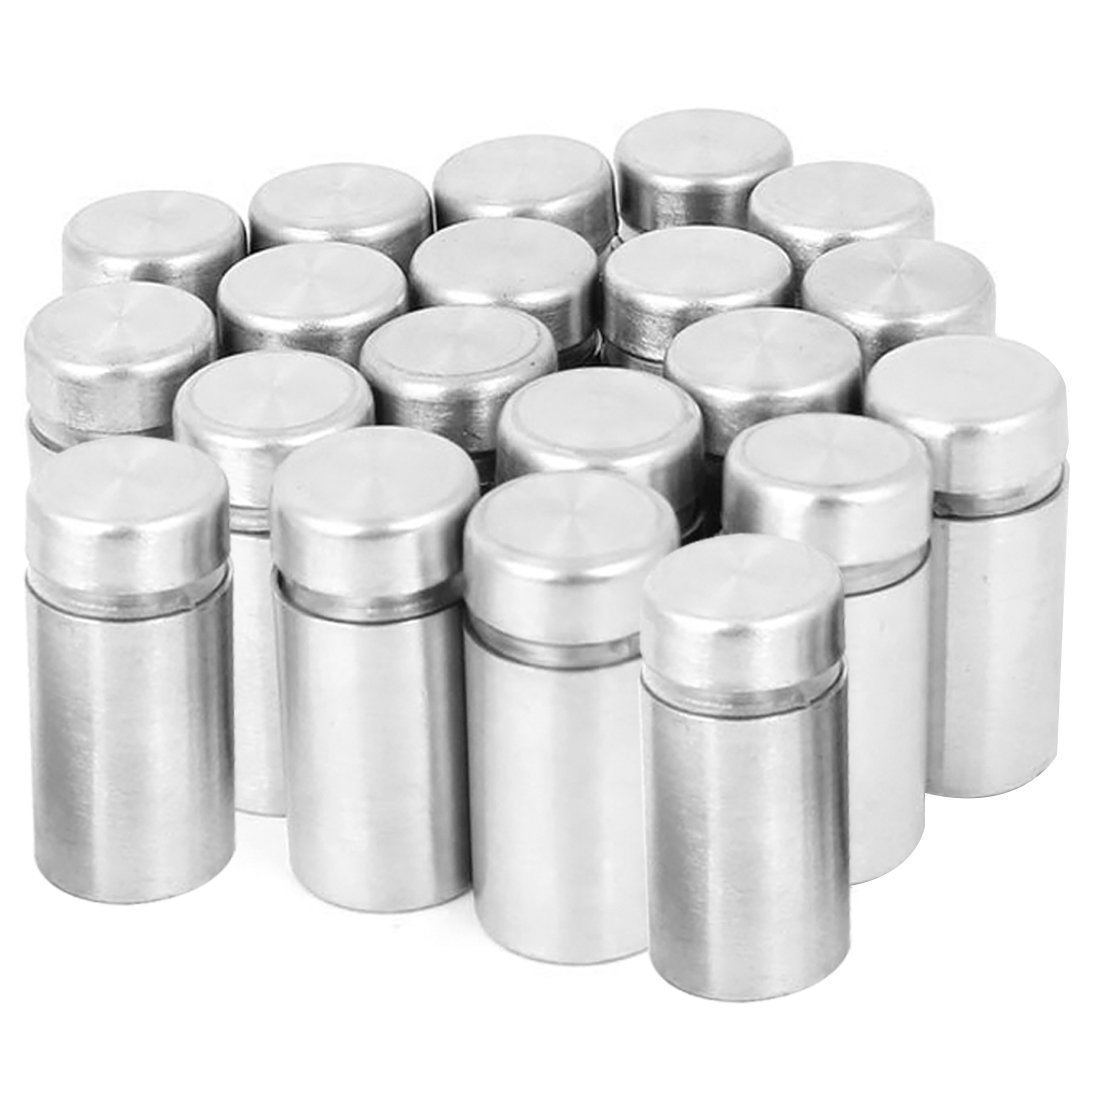 Cheap Standoff Mounts Find Deals On Line At Alibabacom 120pcs M3 Copper Silver Brass Pillars Circuit Board Pcb Nut Get Quotations Lantee 20 Pcs Stainless Steel Glass Sign Hardware Screws 12mmx25mm